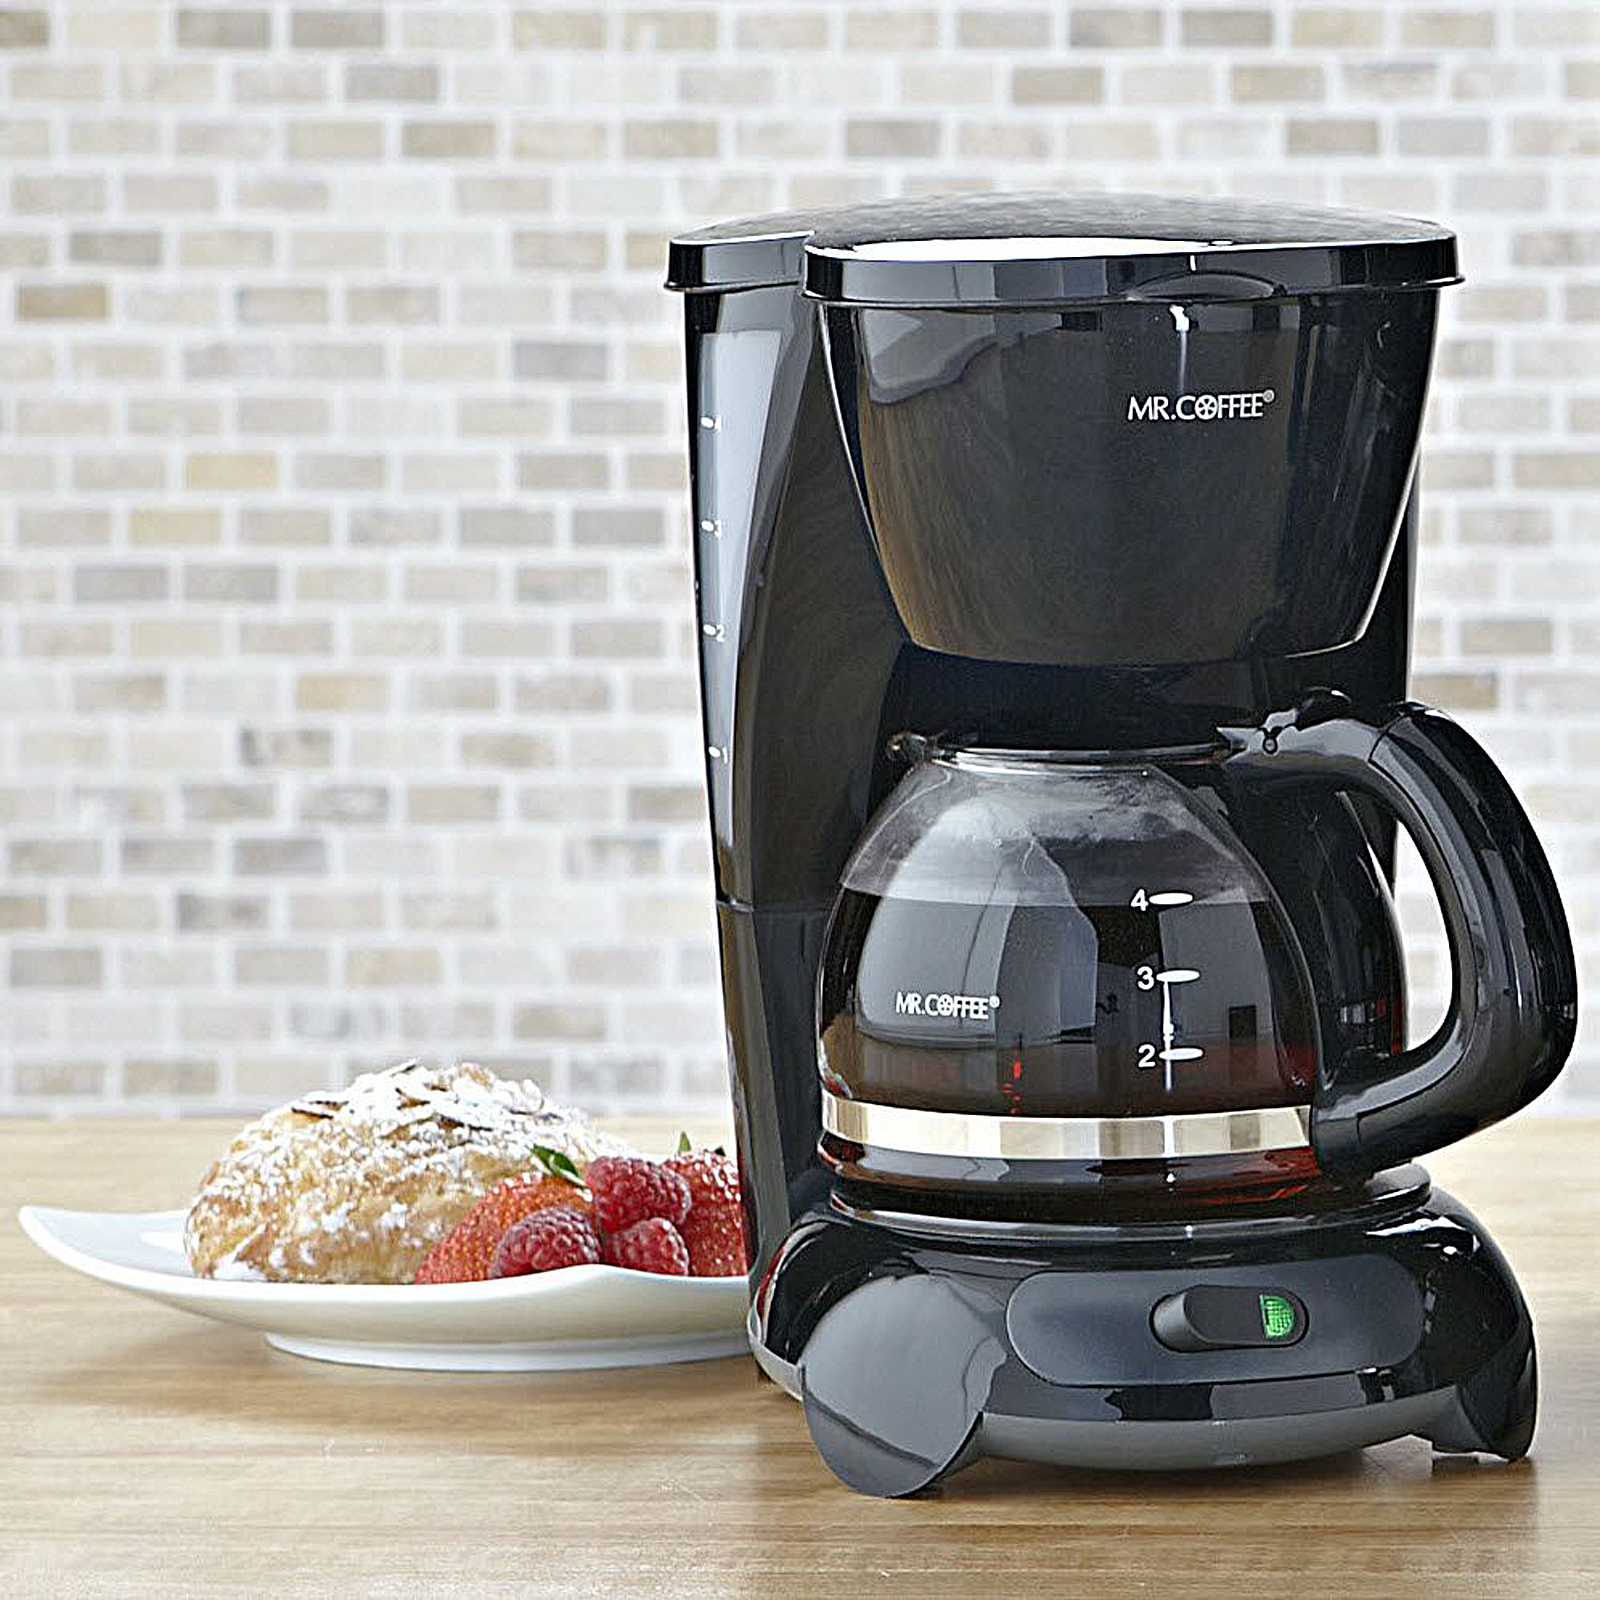 Mr. Coffee 29292911 4-Cup Switch Coffee Maker